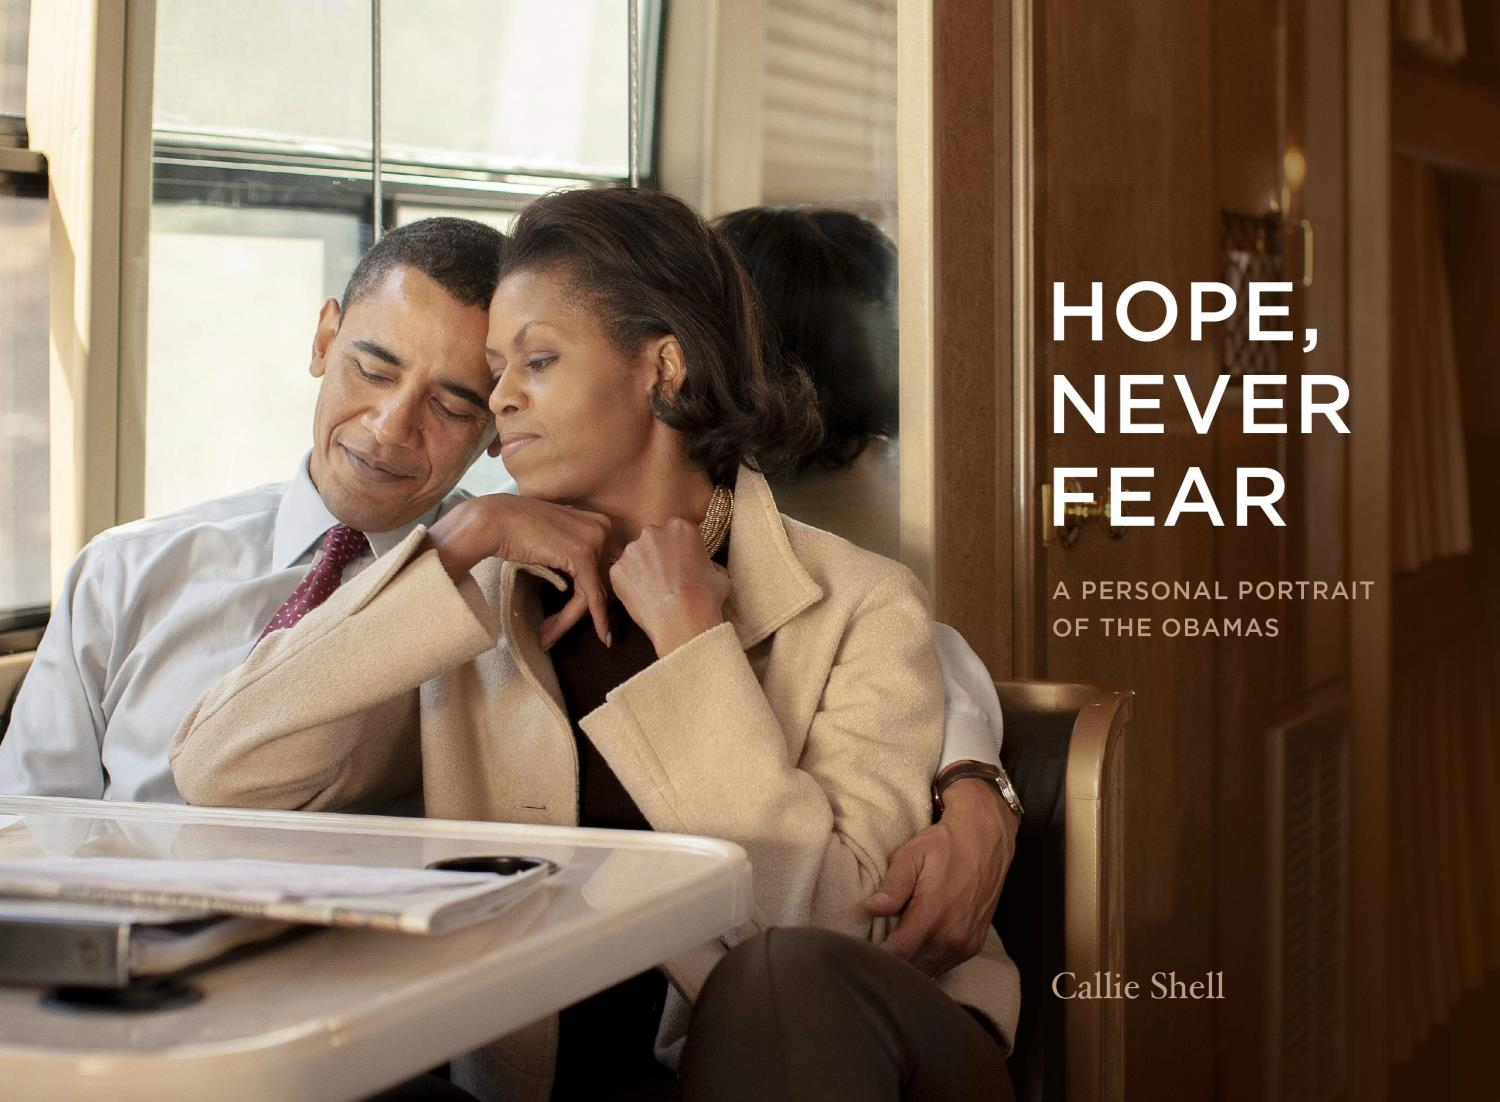 HOPE NEVER FEAR: A PERSDONAL PORTRAIT OF THE OBAMAS